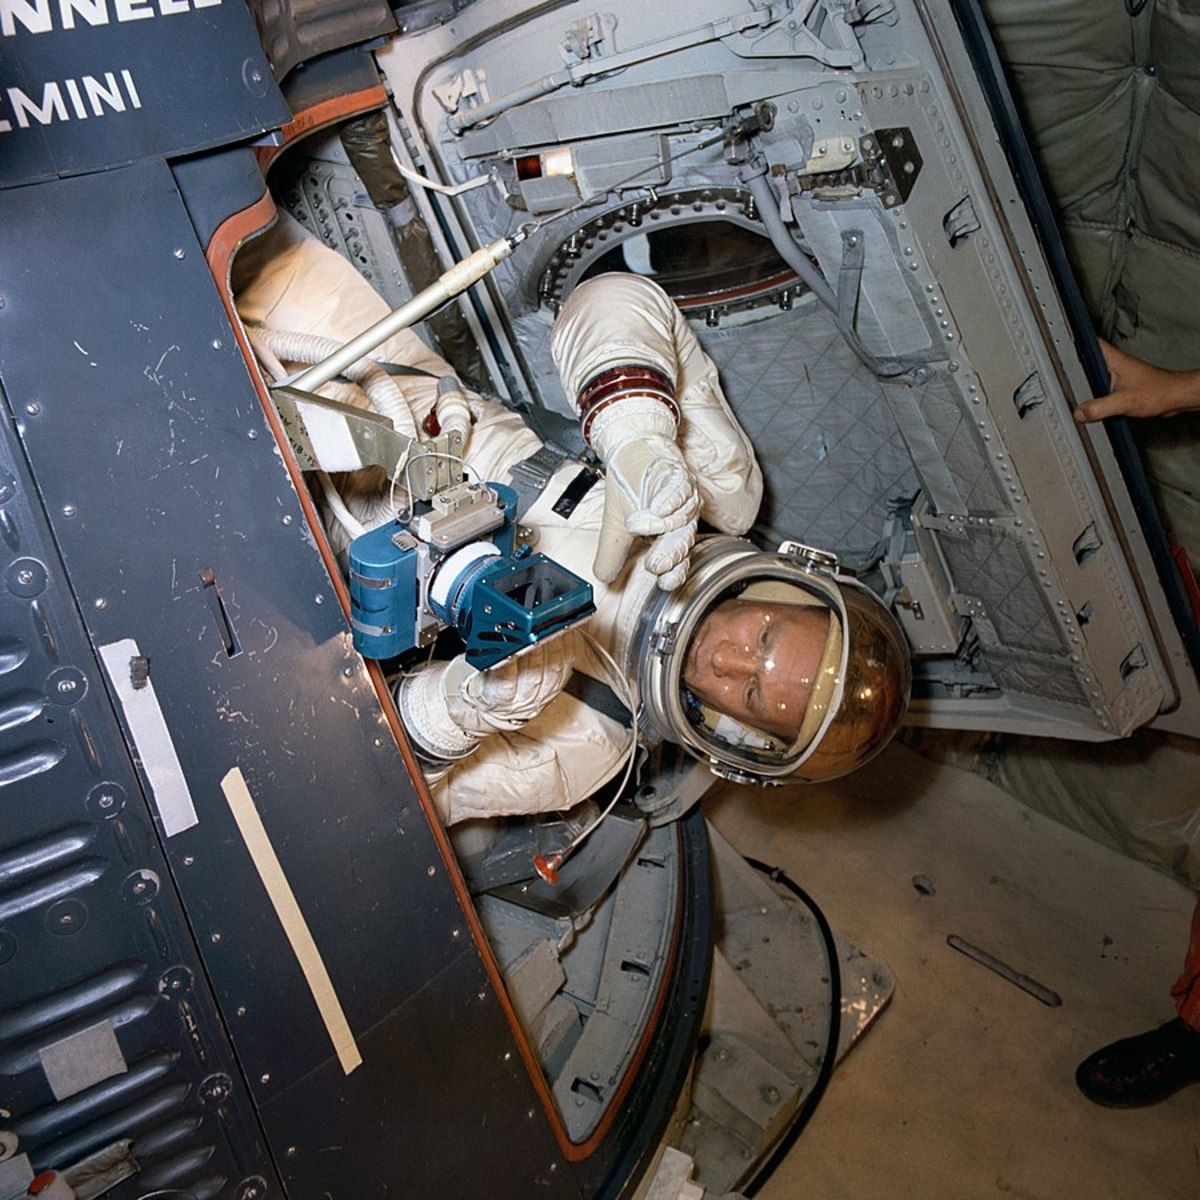 Astronaut Buzz Aldrin, Prime Crew pilot of the Gemini XII space flight, undergoes zero-gravity ingress and egress training aboard an Air Force KC-135 aircraft. He practices using camera equipment.